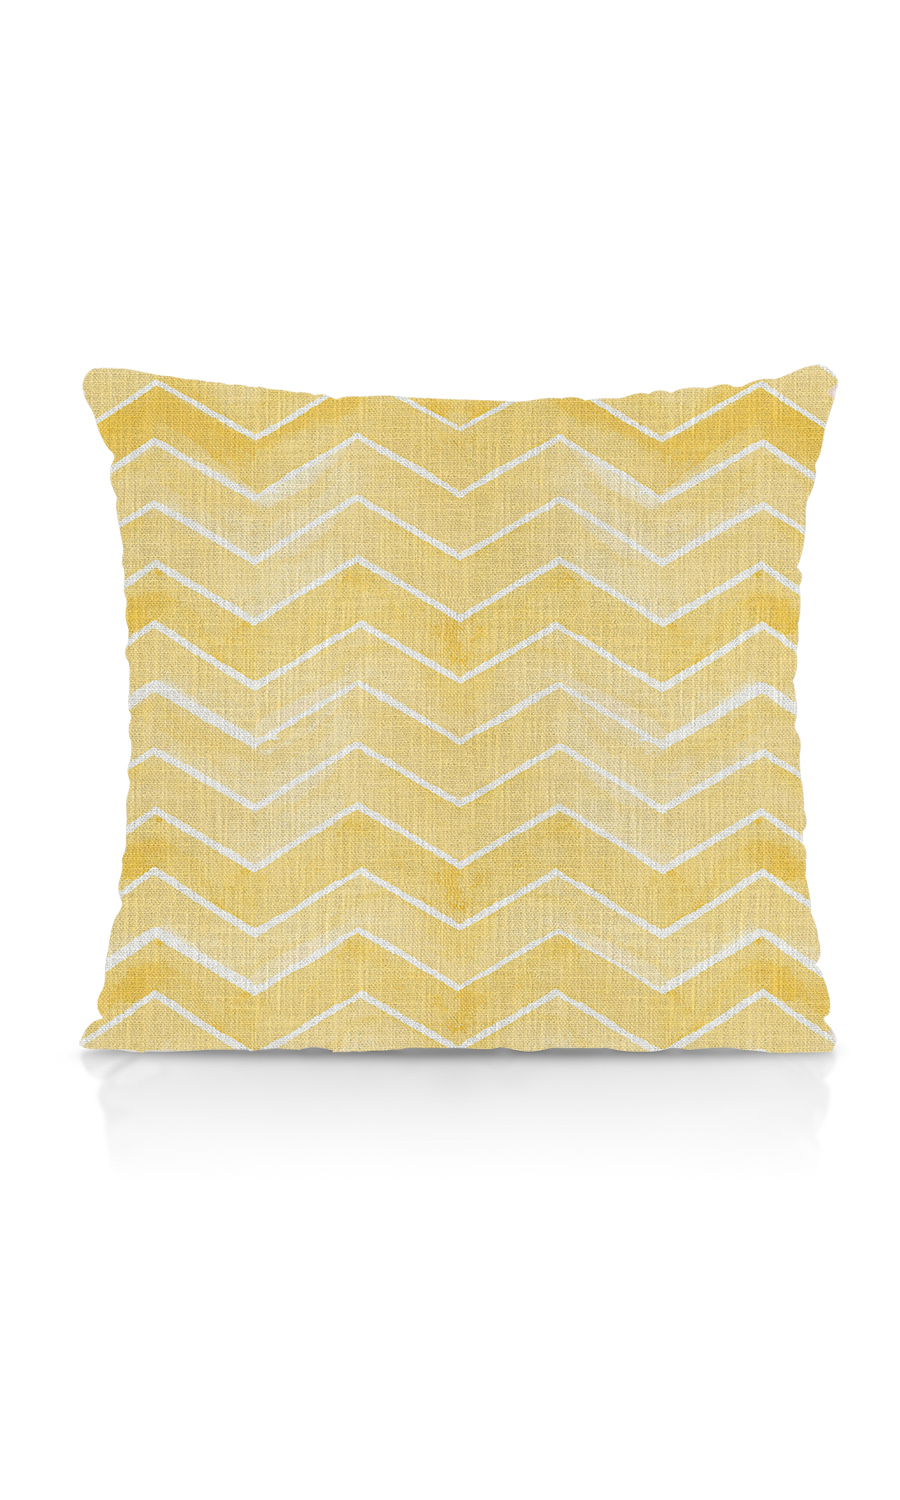 Floral Printed Zig Zag Budget Cushion Cover